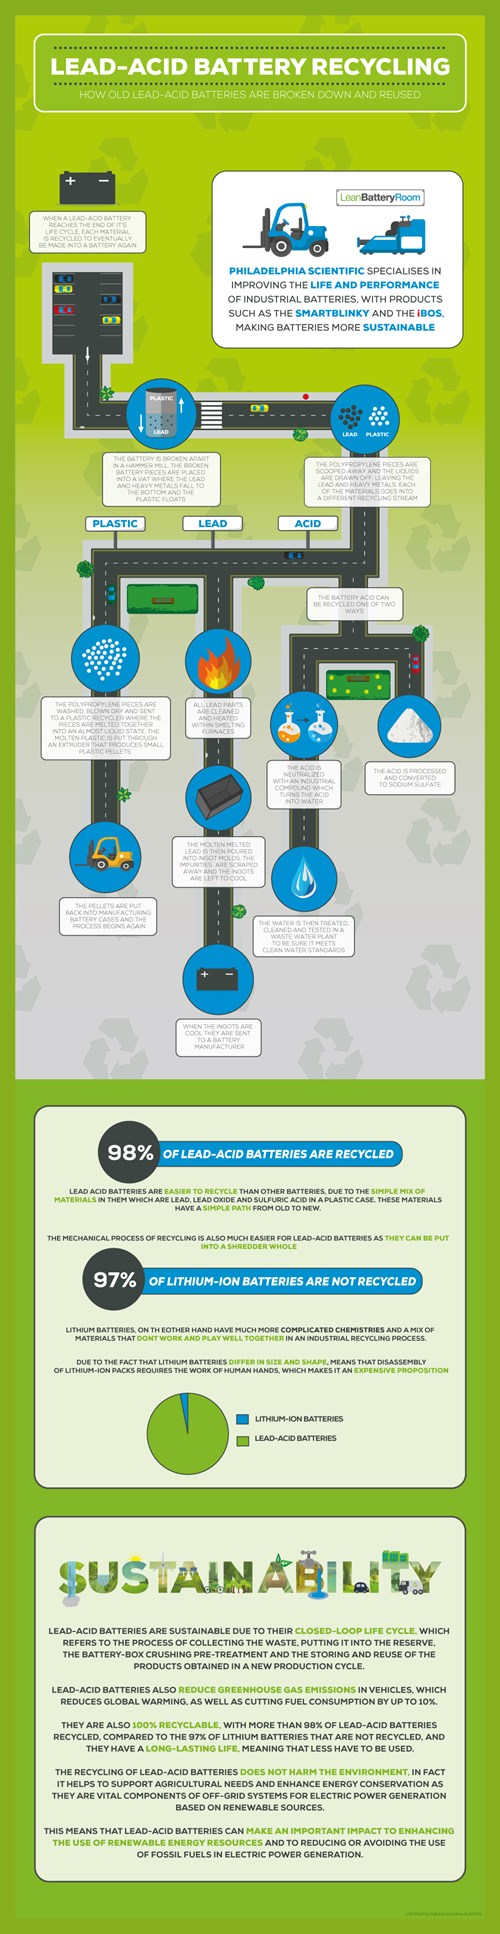 Sustainability_Infographic_v5.jpg